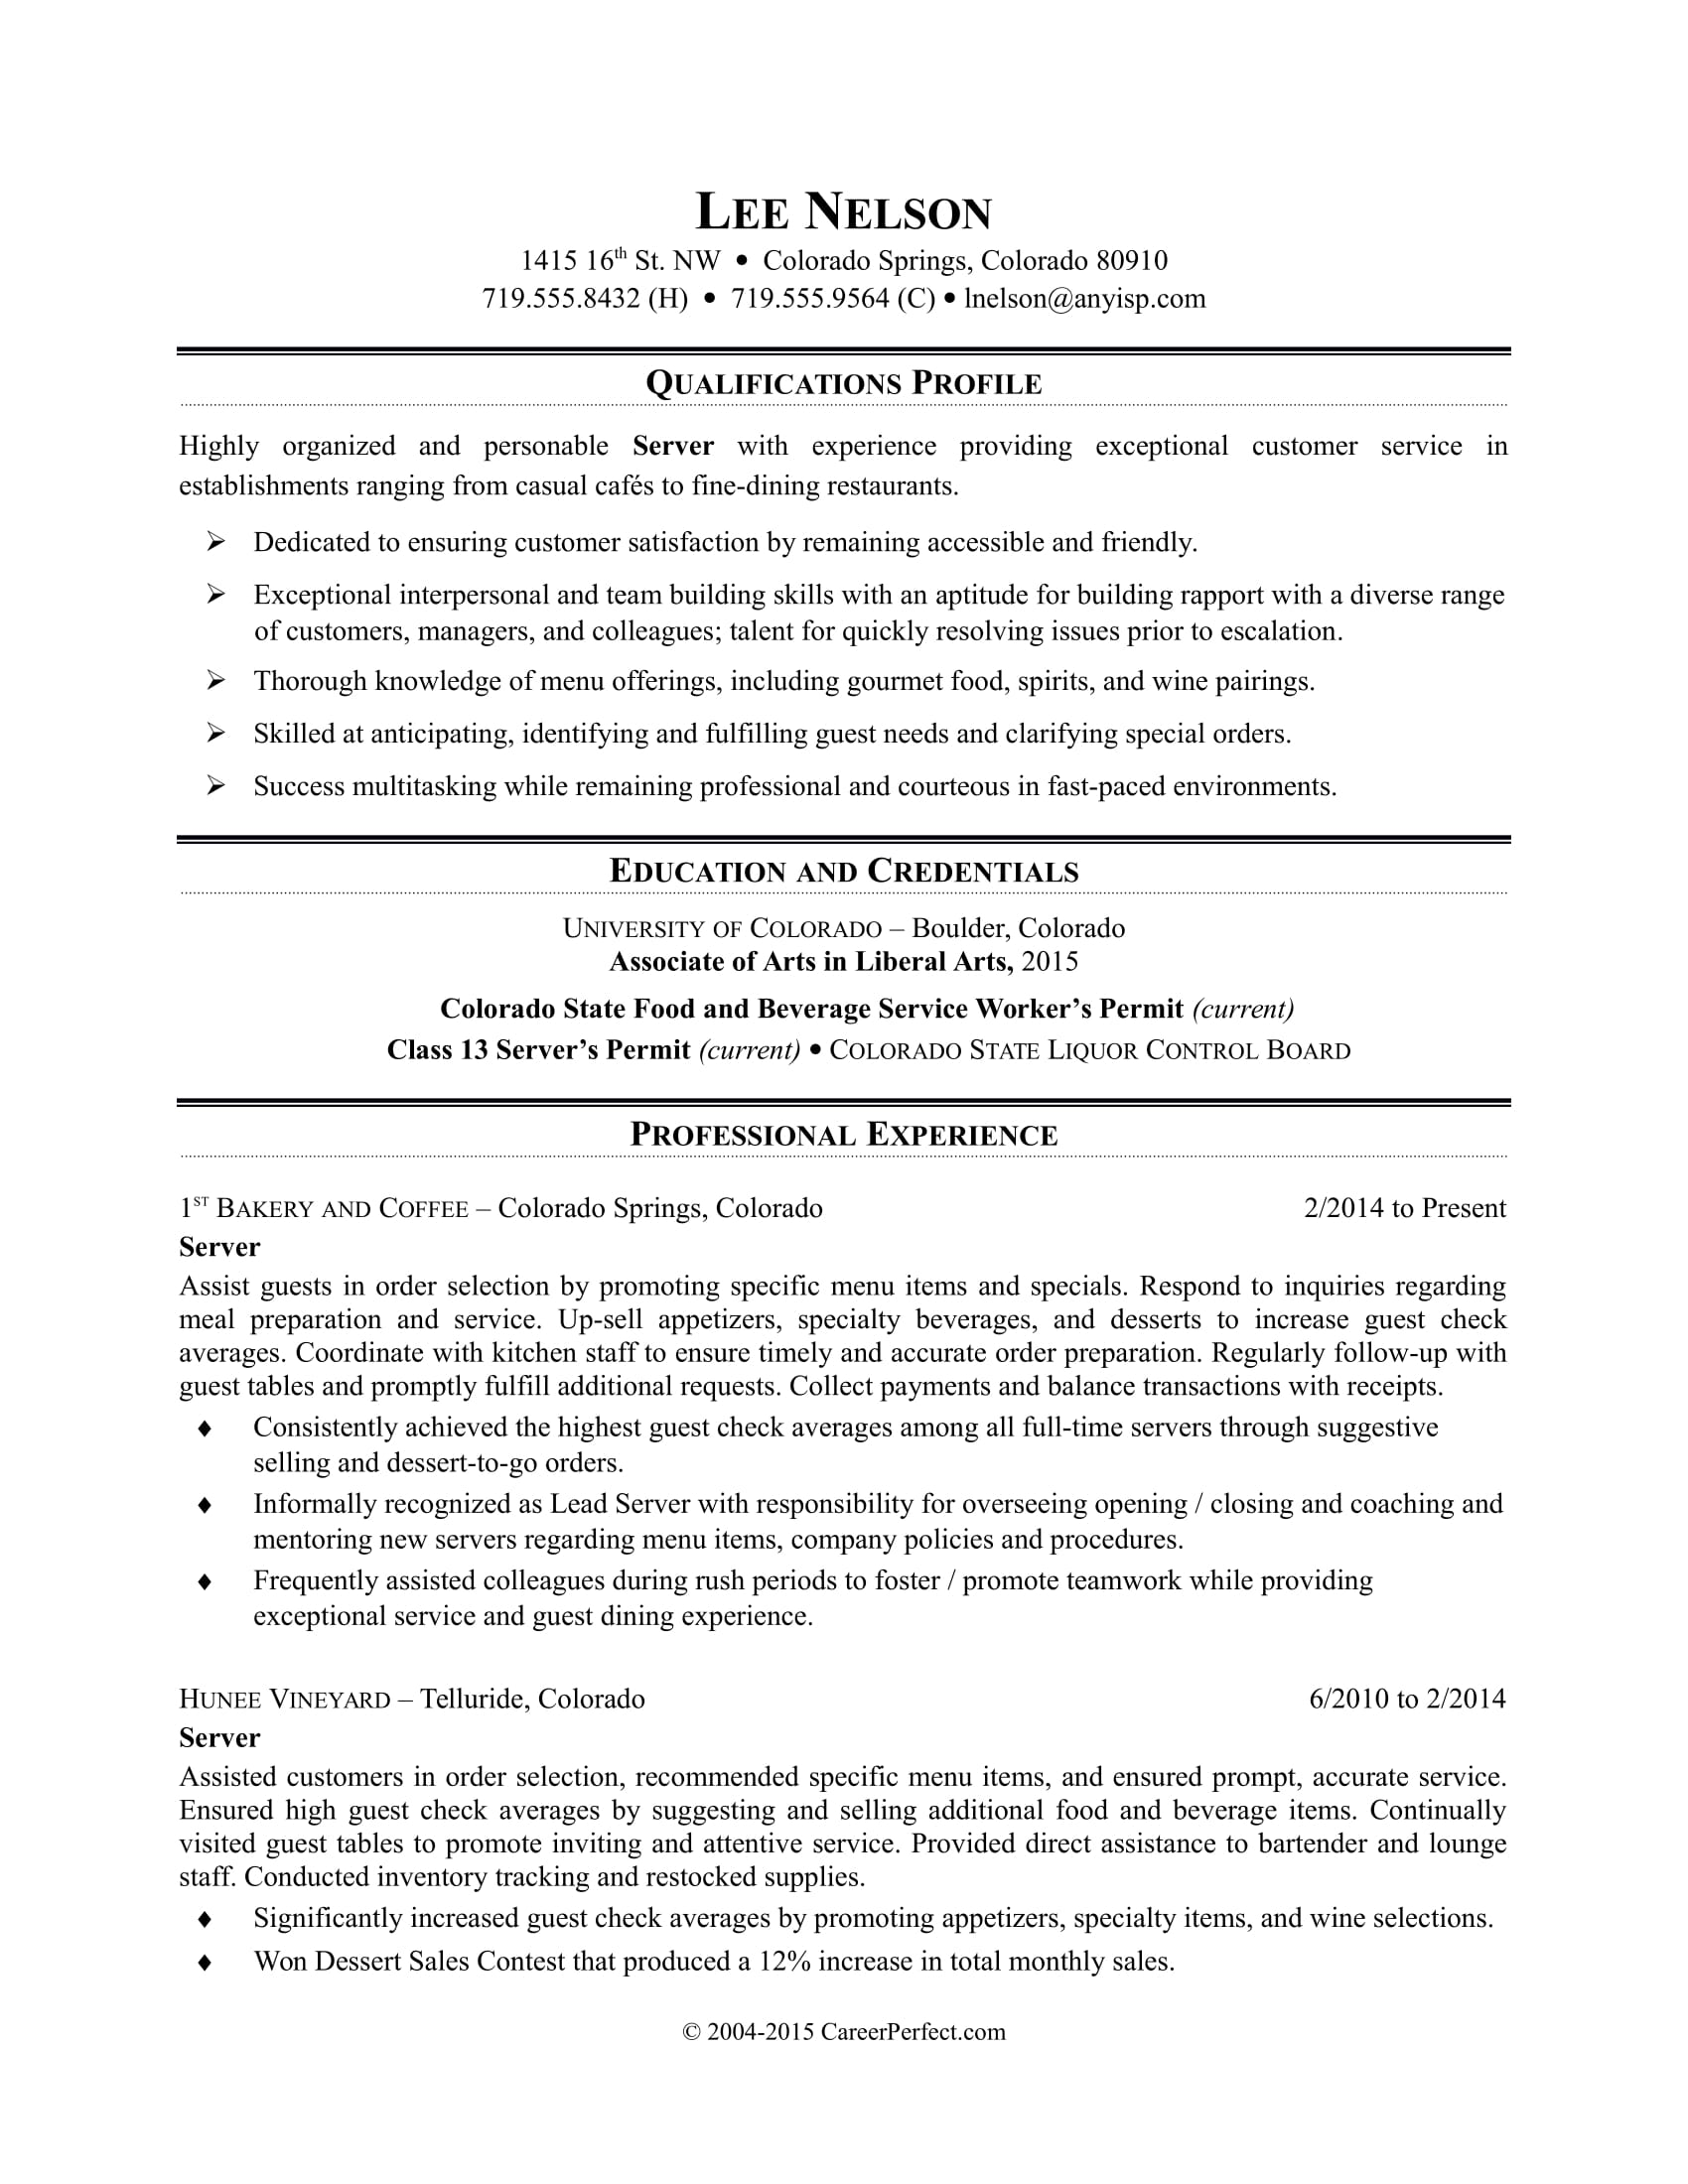 Restaurant server resume sample monster sample resume for a restaurant server yelopaper Image collections